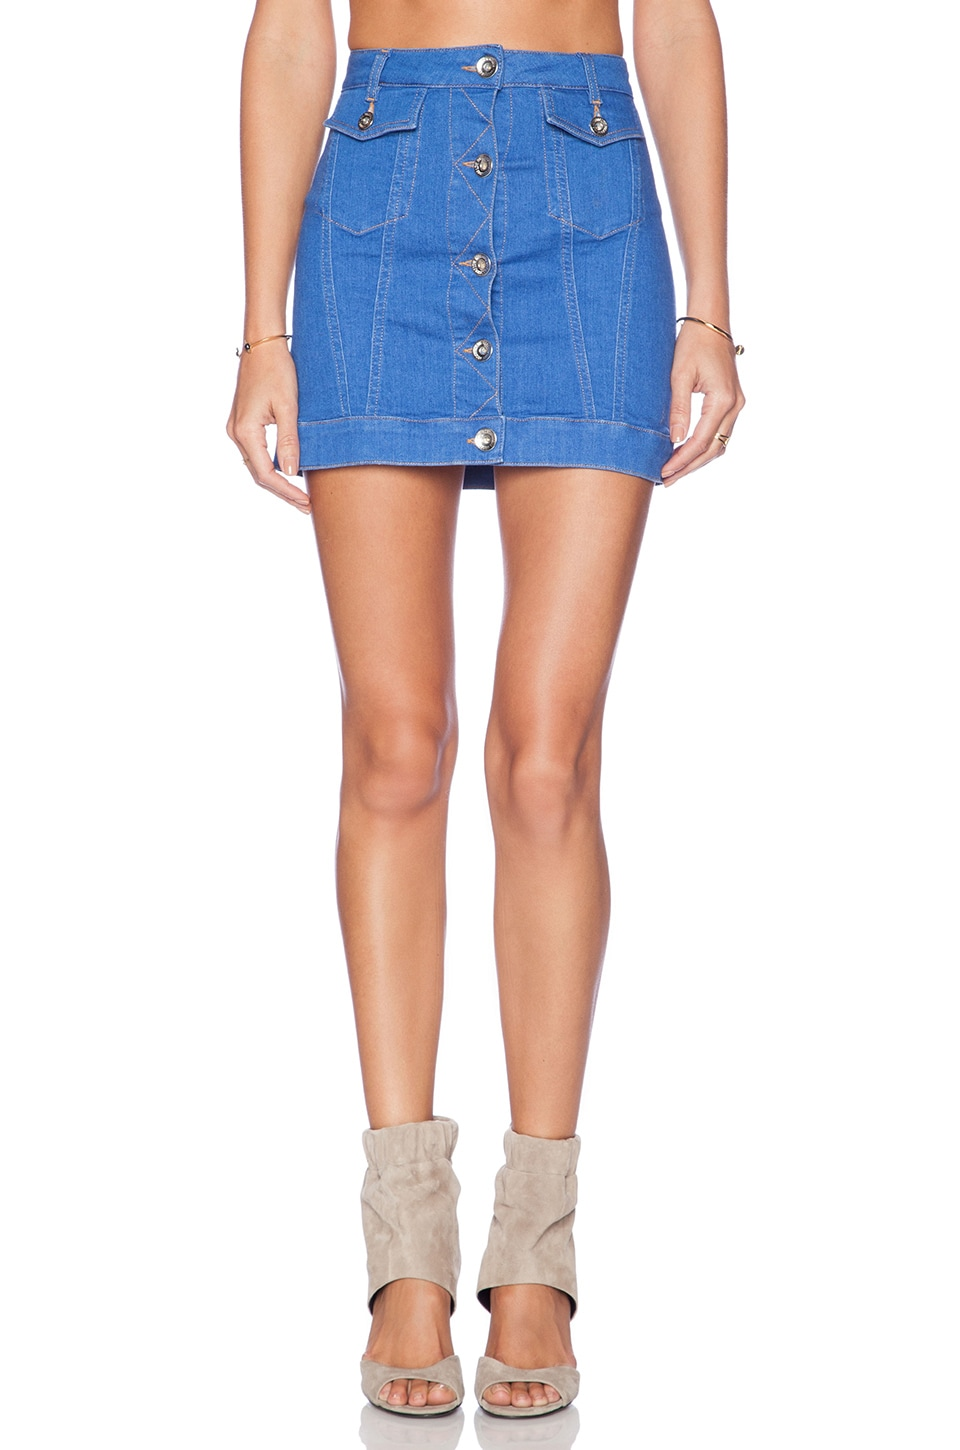 Love Moschino Denim Mini Skirt in Medium Blue